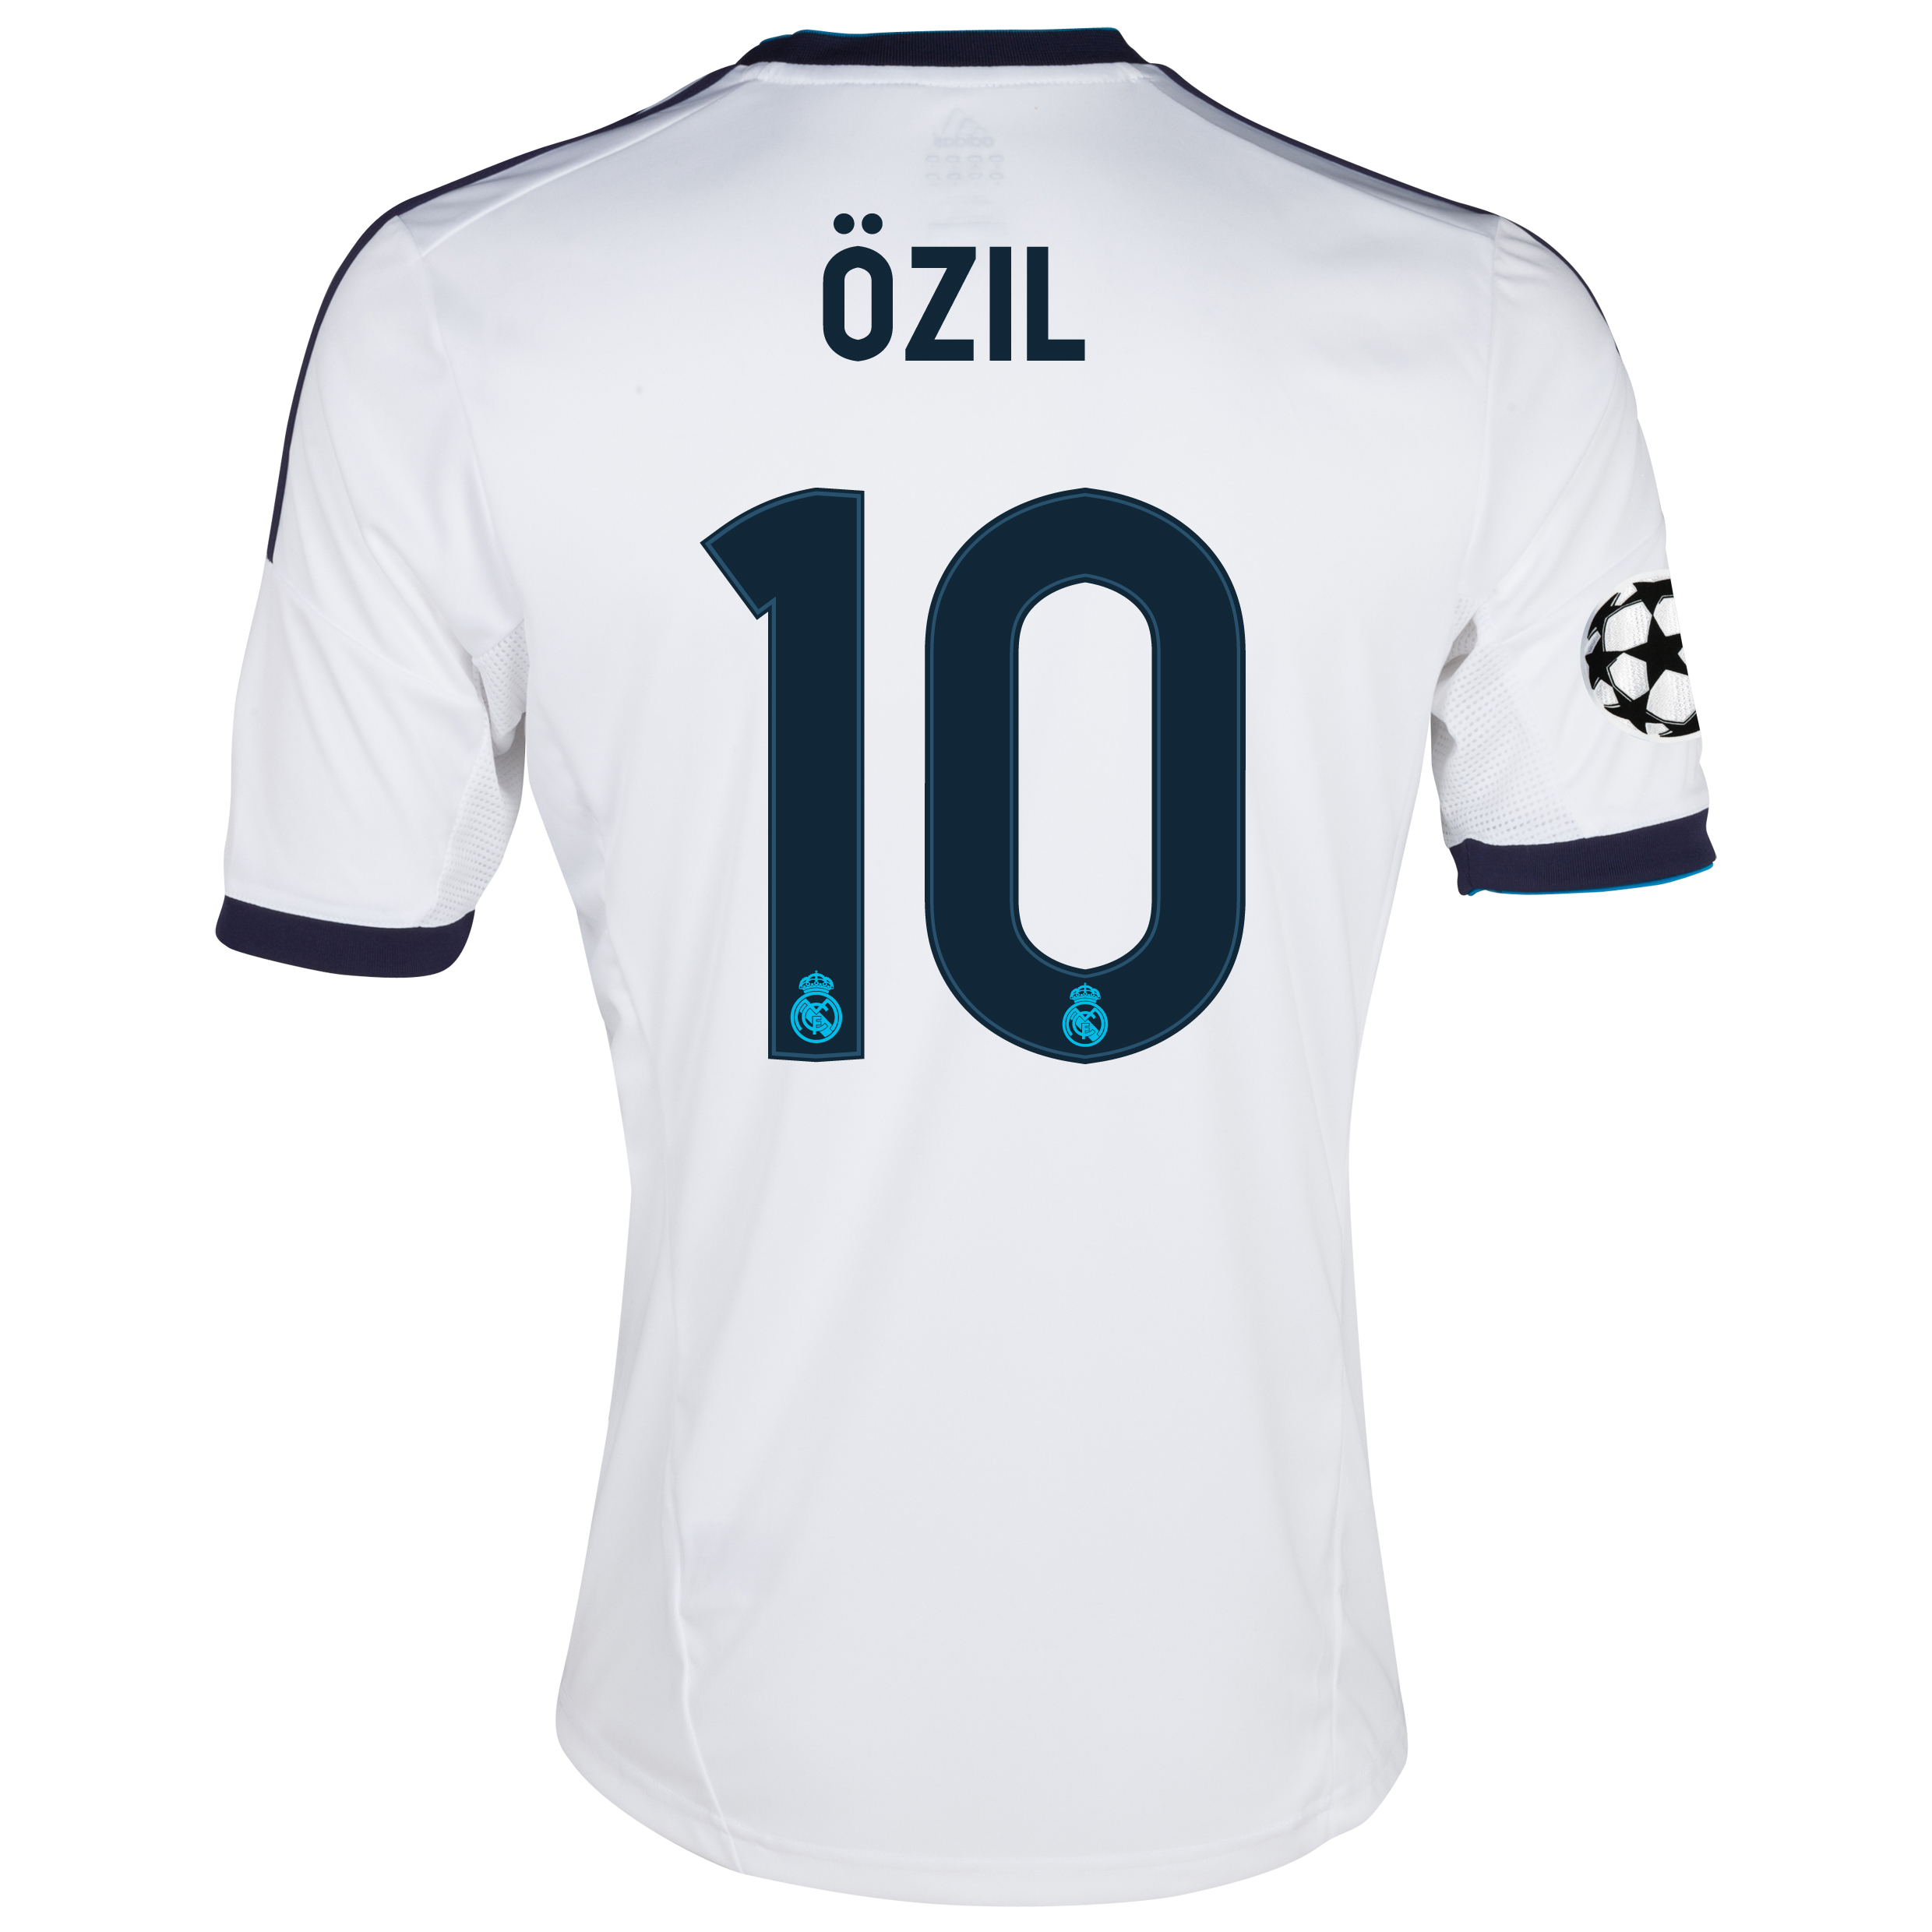 Real Madrid UEFA Champions League Home Shirt 2012/13 - Youths with zil 10 printing